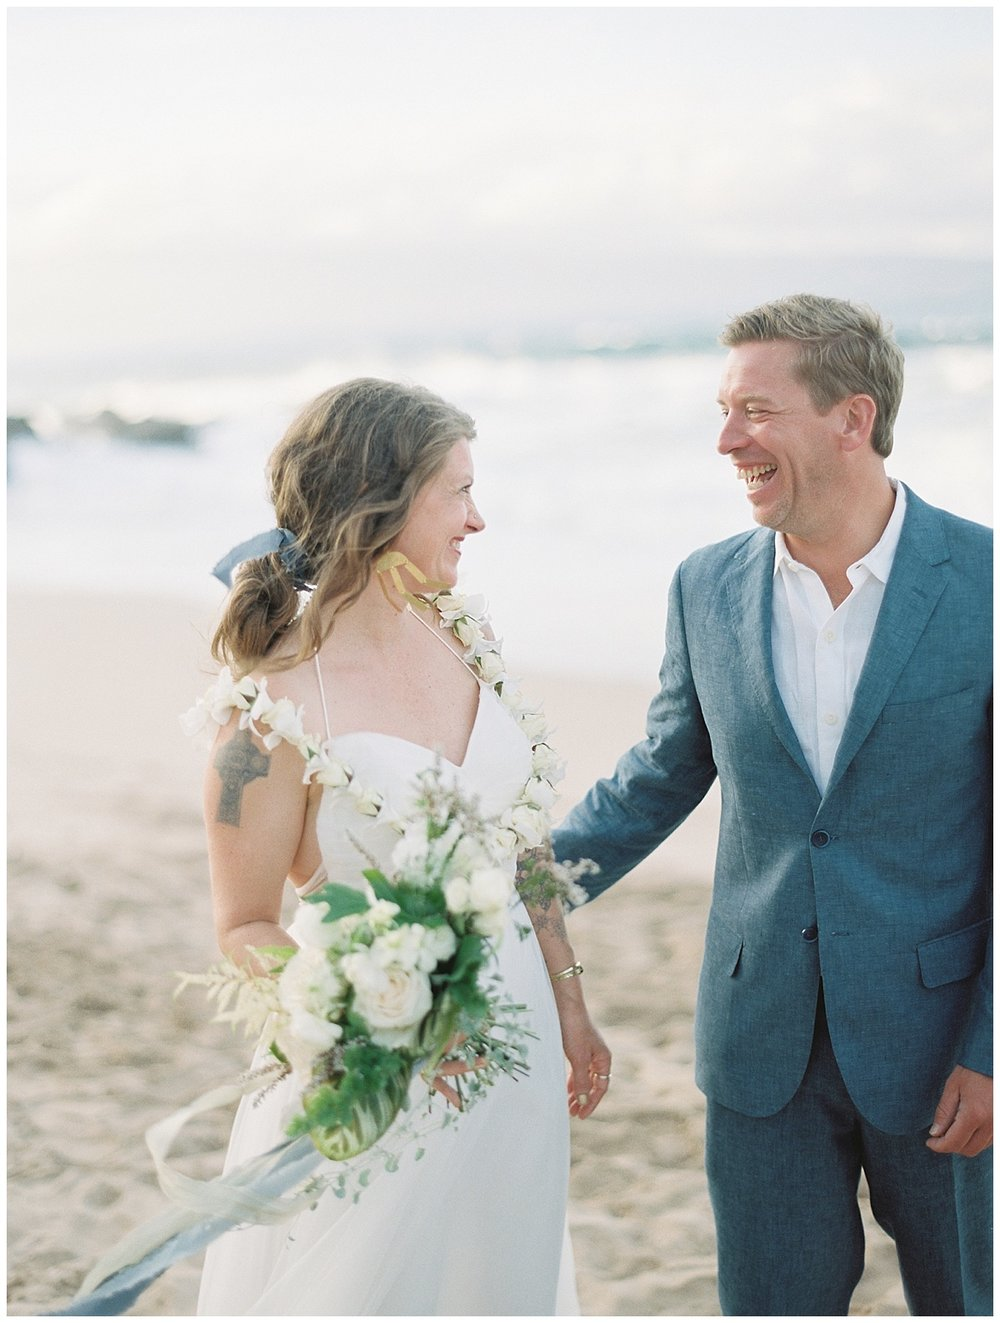 beach-elopement-bride-groom-laughing-together.jpg